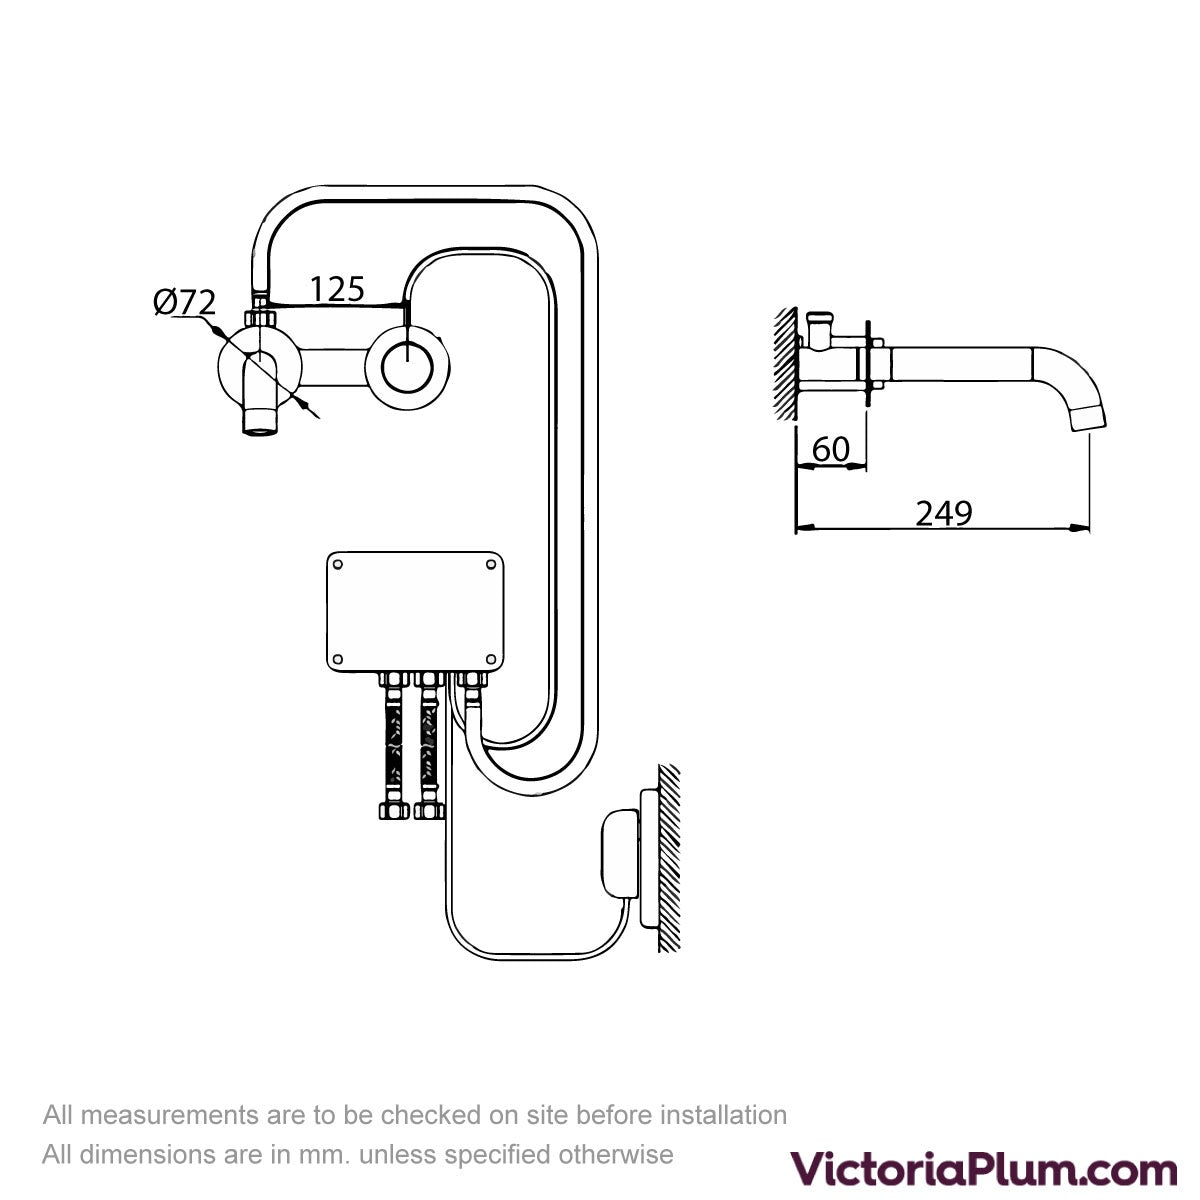 Dimensions for Mode Touch digital thermostatic wall mounted basin mixer tap